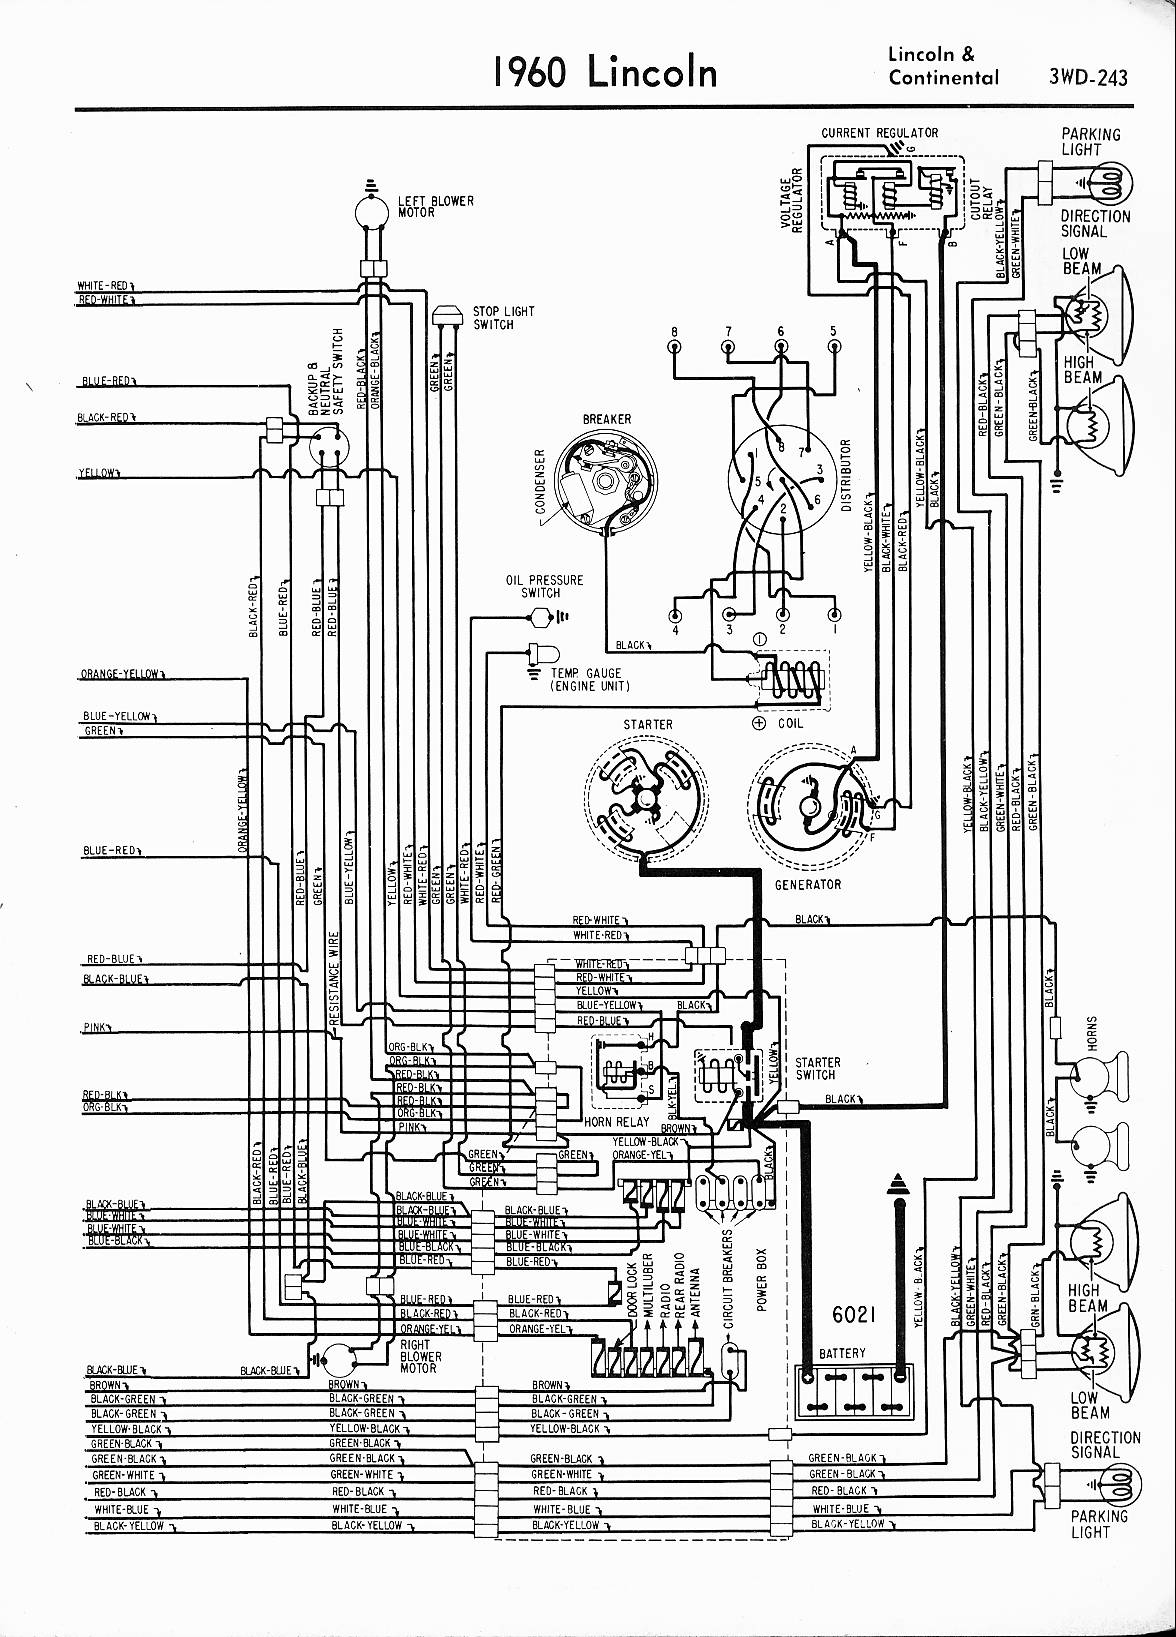 Excellent 2003 Lincoln Ls Wiring Diagram Basic Electronics Wiring Diagram Wiring Cloud Overrenstrafr09Org